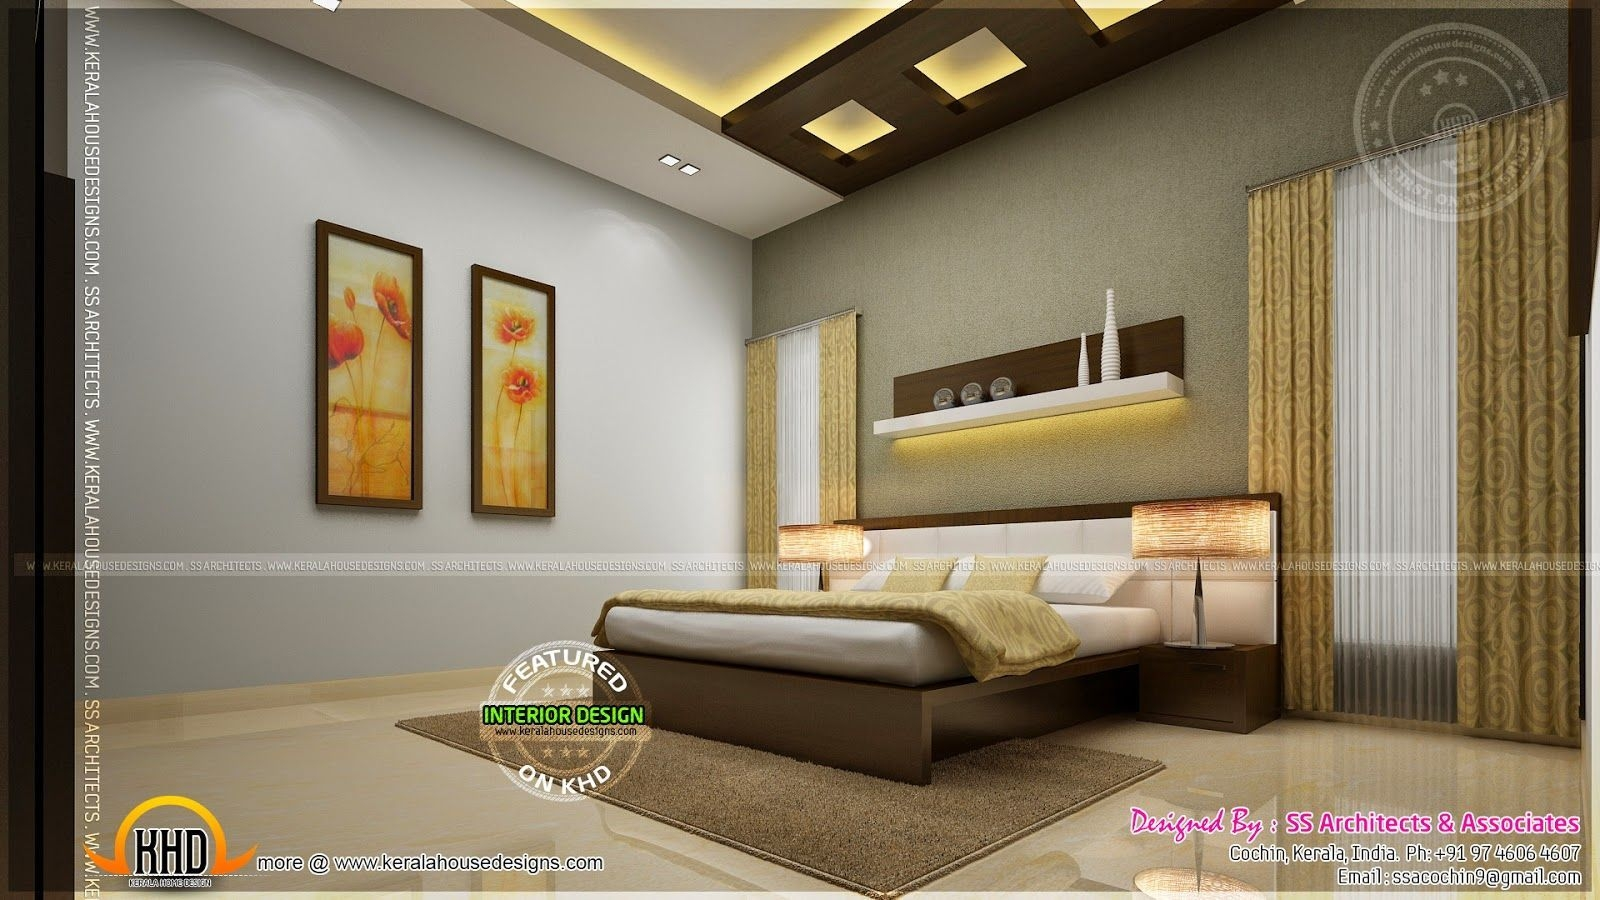 Indian Master Bedroom Interior Design  Google Search  Interior Design Bedroom Master Bedroom